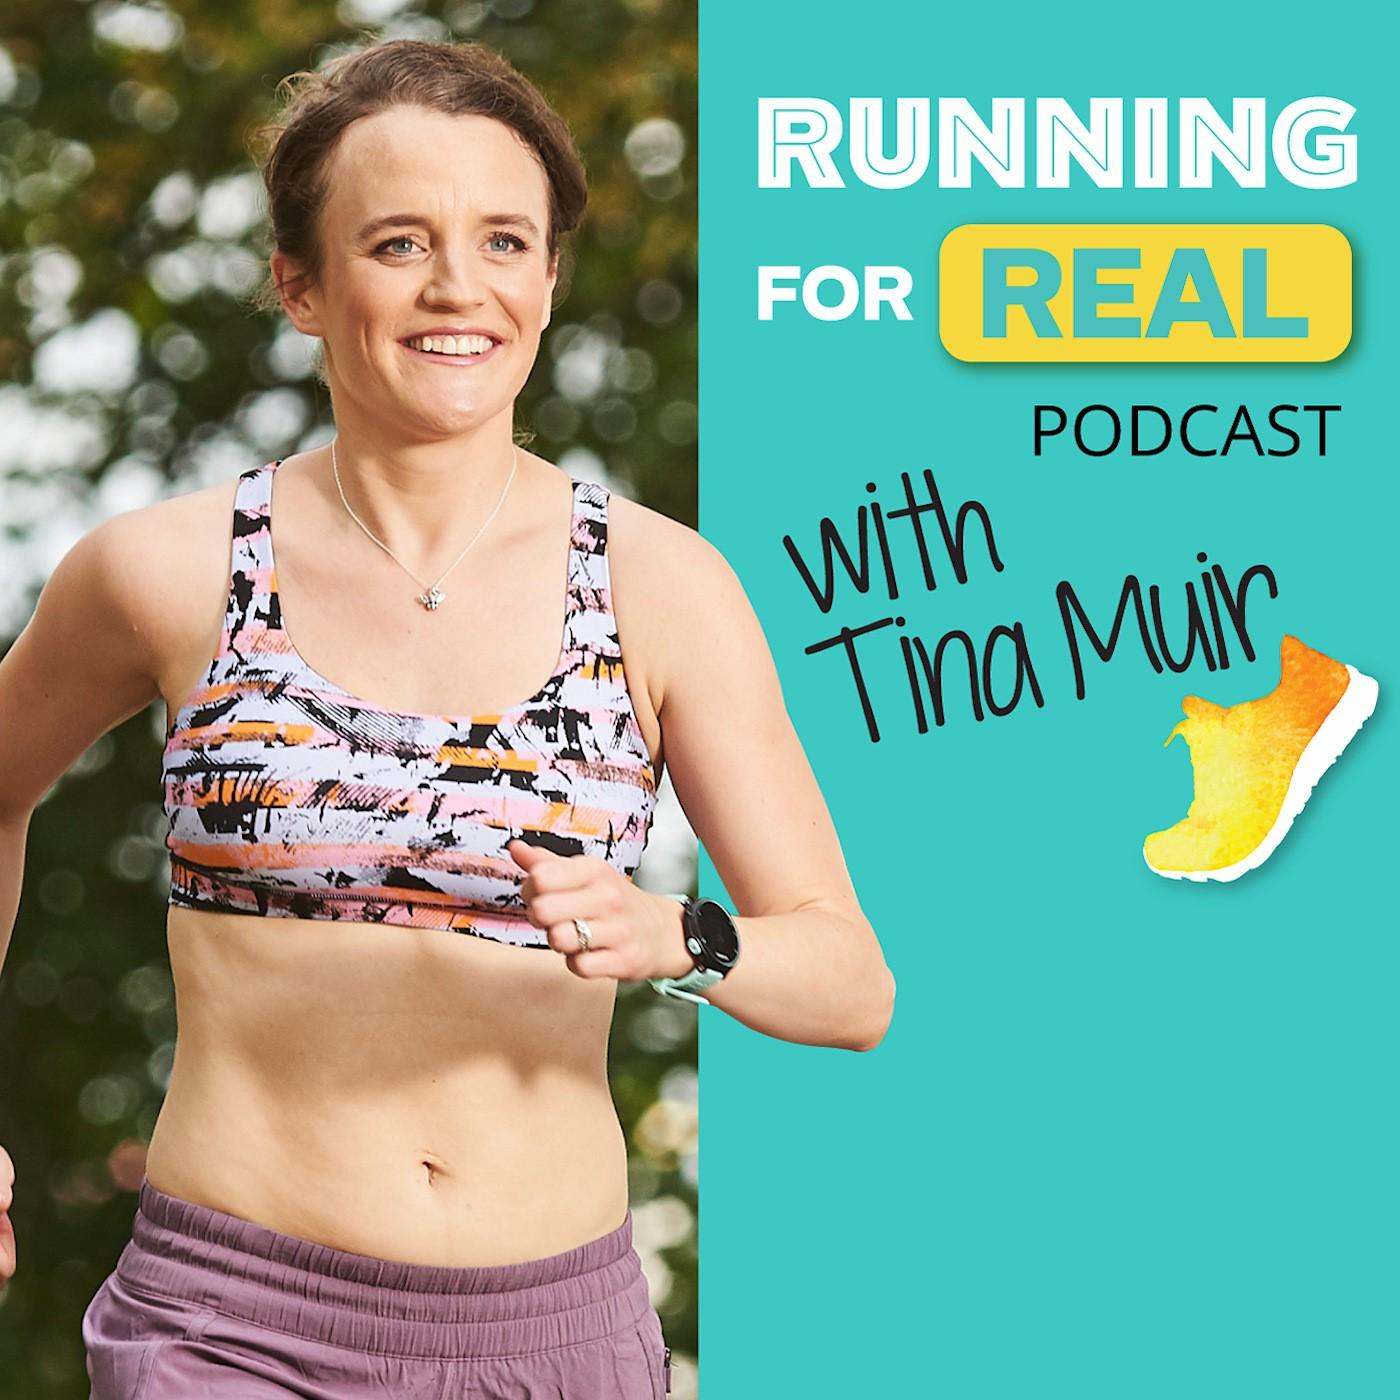 Sabrina Pace-Humphries: Bringing Diversity And Equality To Trail Running - R4R 216